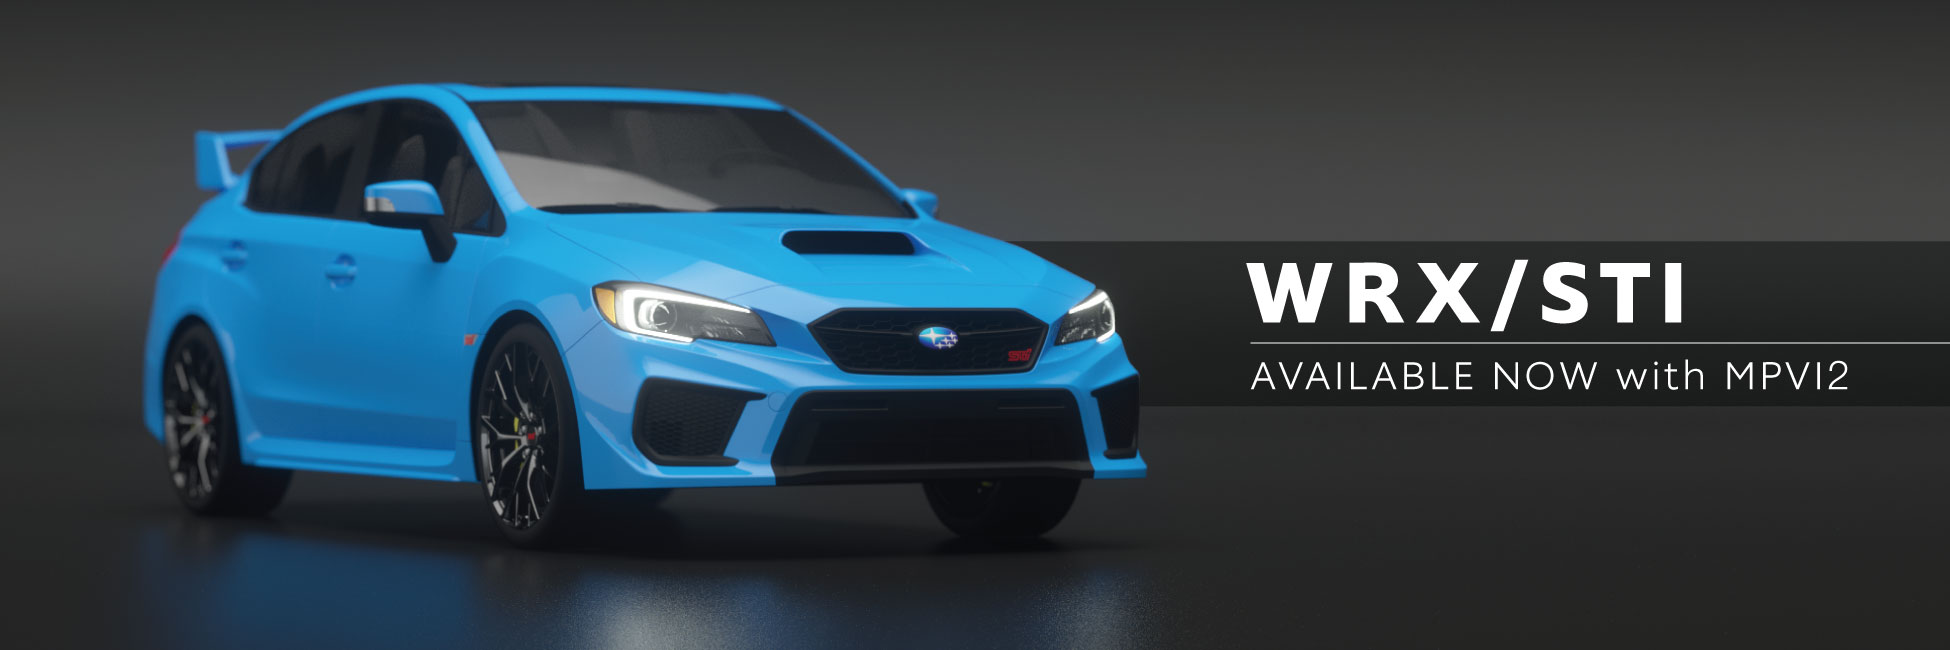 WRX/STI Tuning Now Available with MPVI2